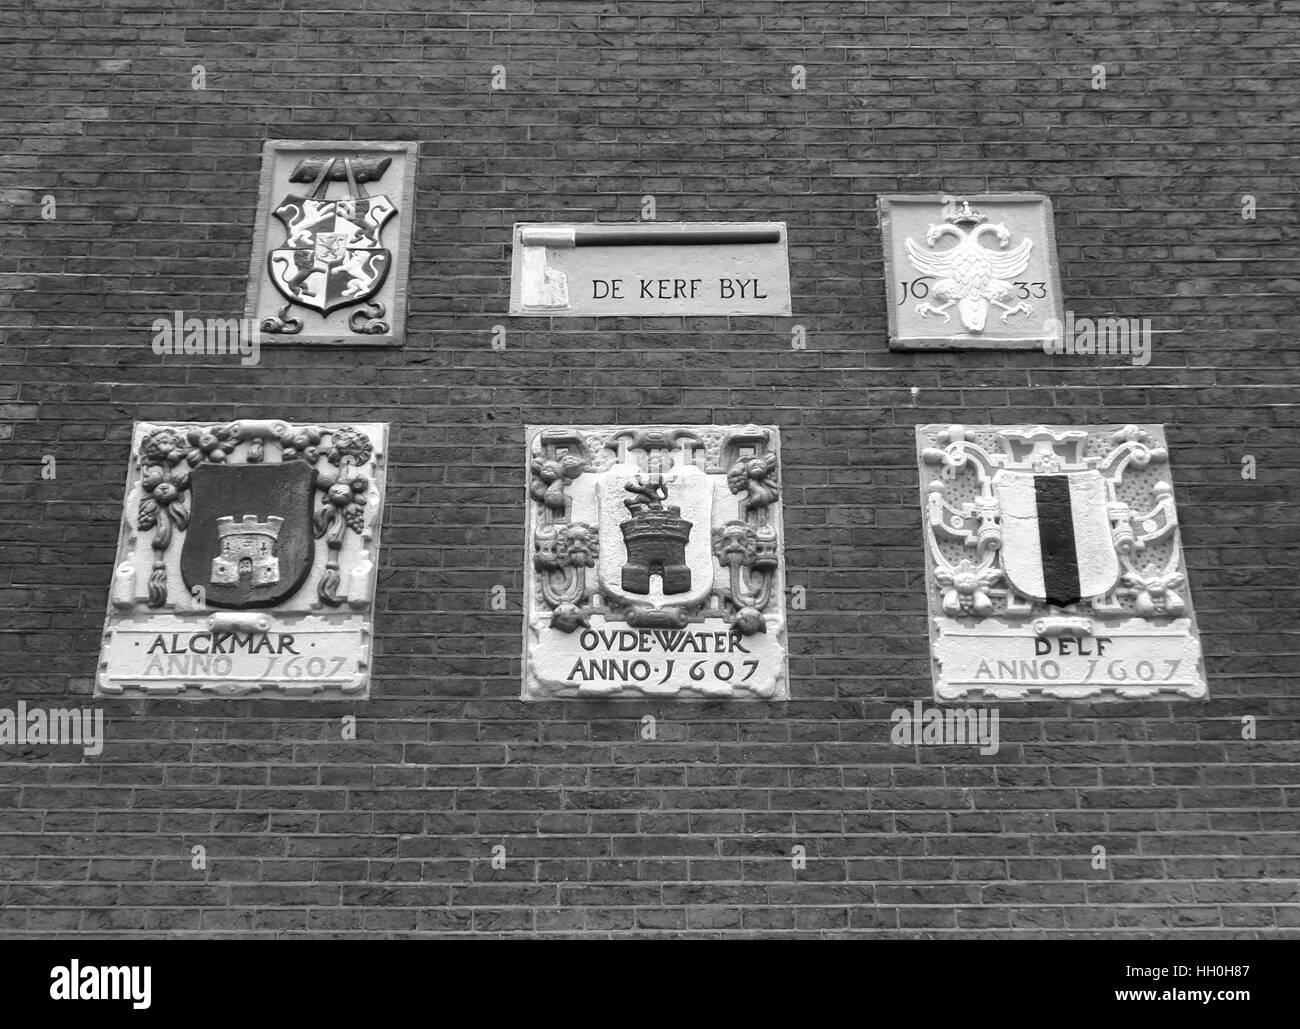 Monochrome photo of bricks wall with vintage style relief, Amsterdam, The Netherlands - Stock Image